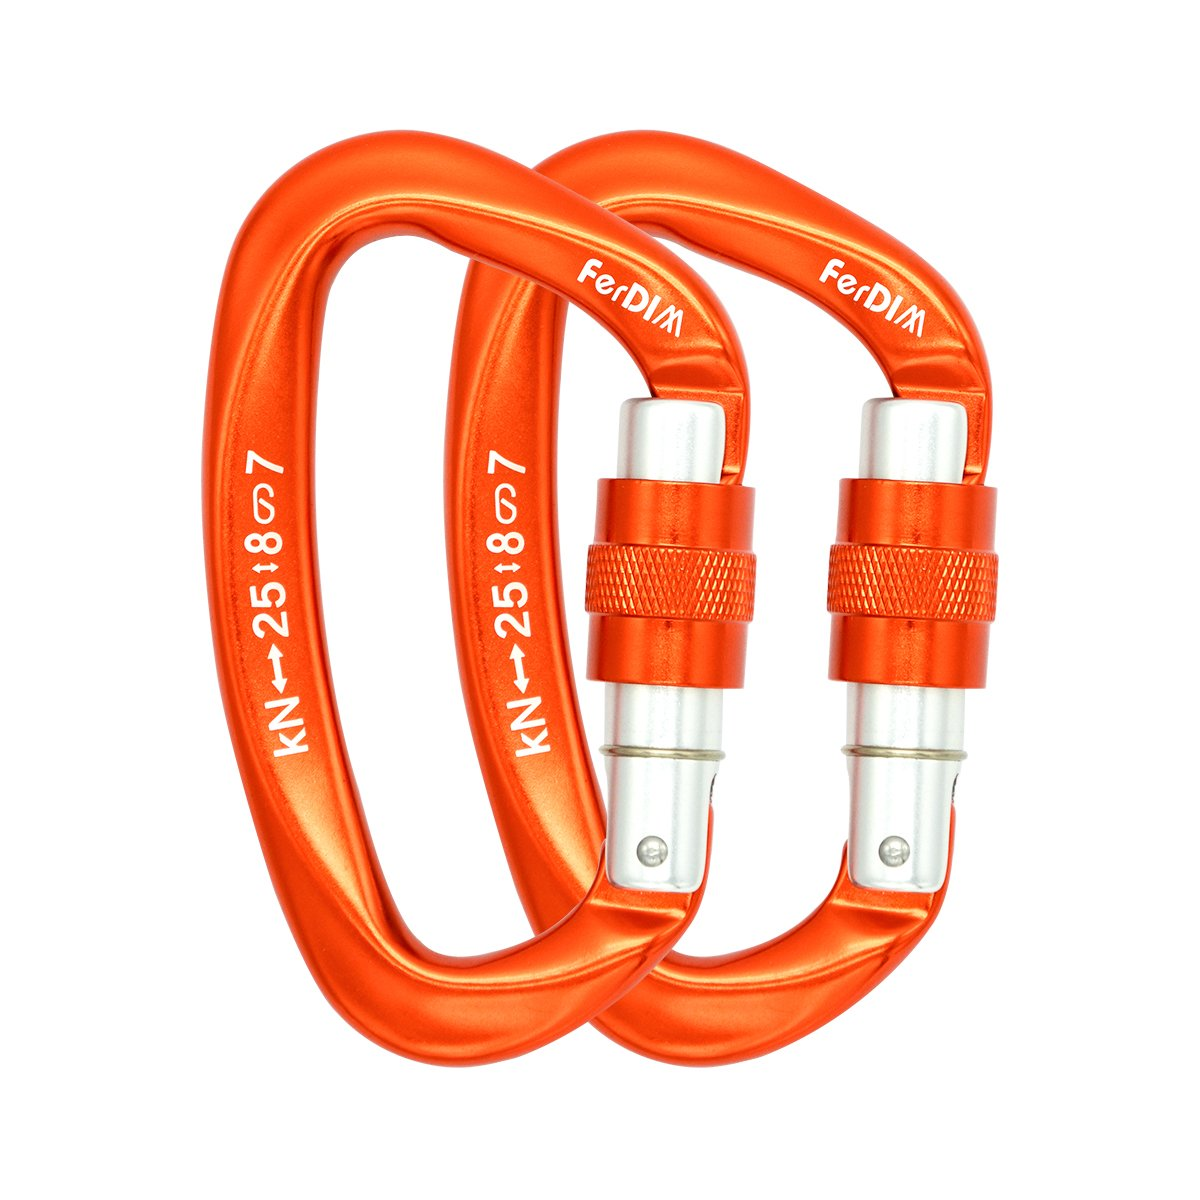 FerDIM 25KN Rock Climbing Carabiner, D-Shaped Hot-Forged Magnalium Locking Climbing Hook Holds 5511lbs with Screwgate Clip Climber Hiking Karabiner Outdoor Sport Tools CE Certified (Orange, 2/Pack)